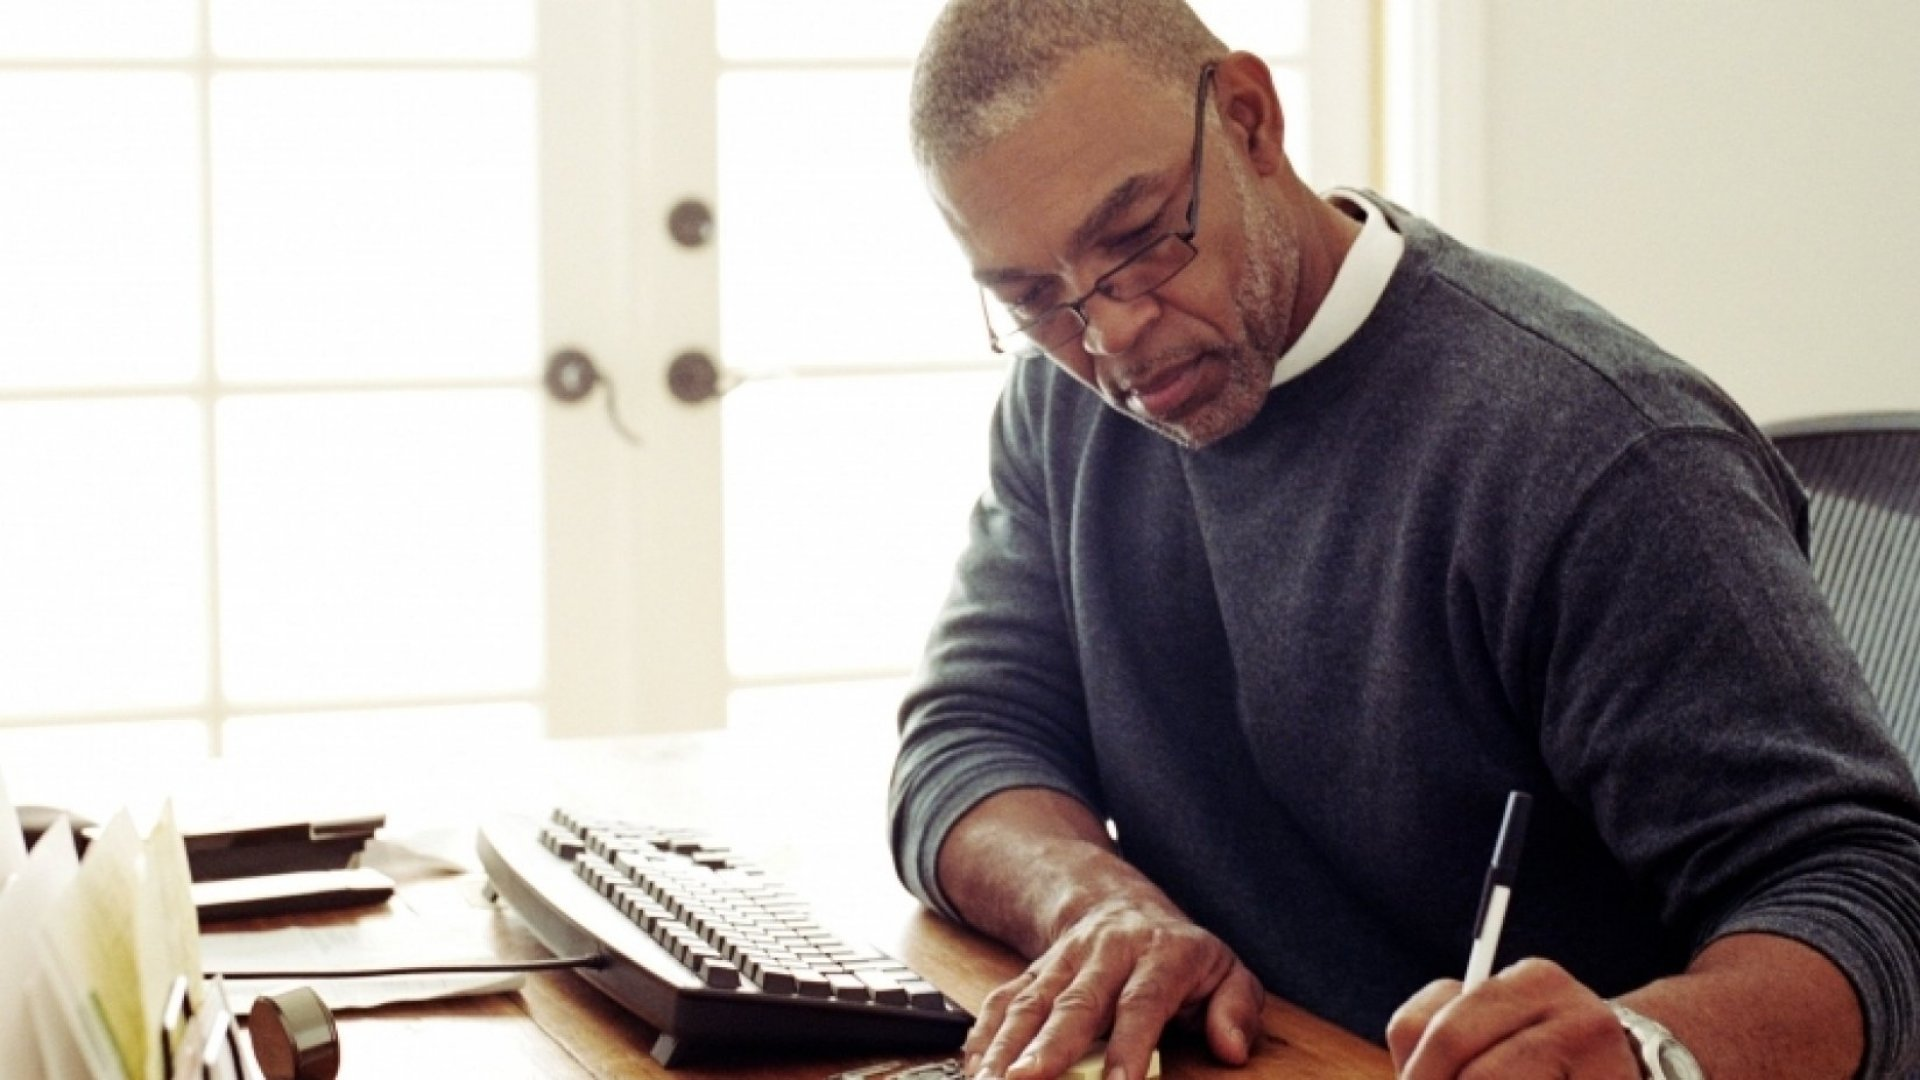 5 Quick Tips To Master Managing Remotely